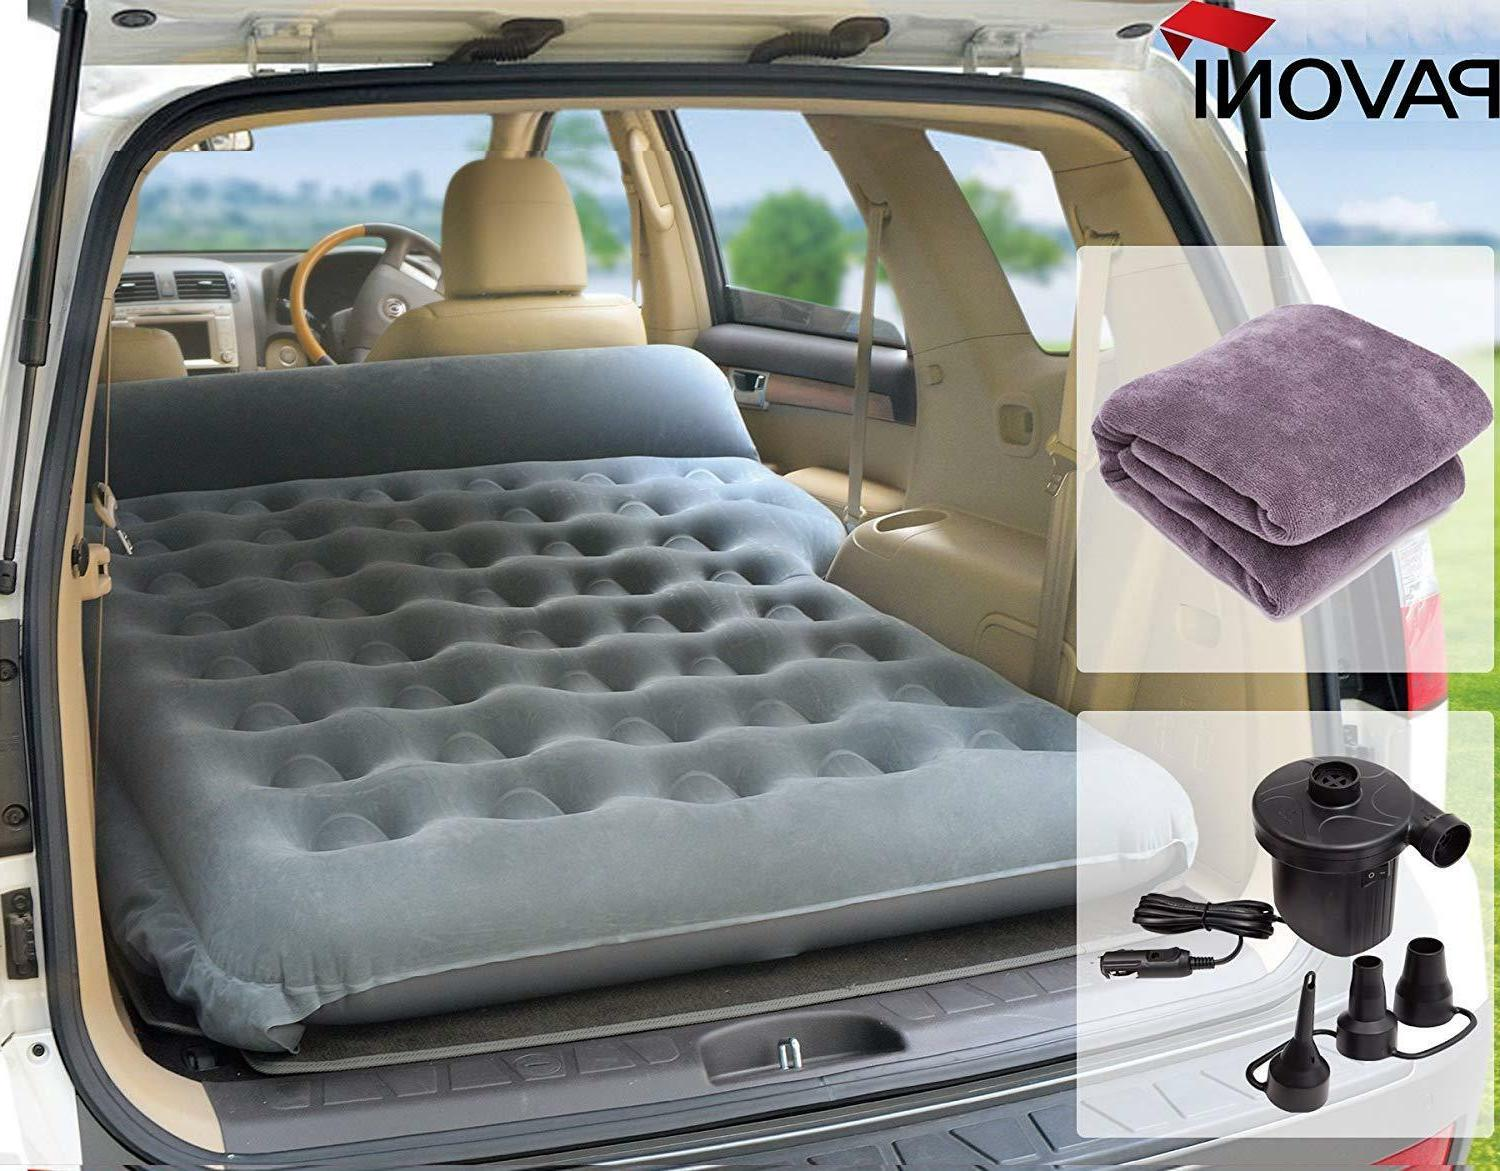 Mattress Air Bed Inflatable Travel Camping Heavy Duty Car SU